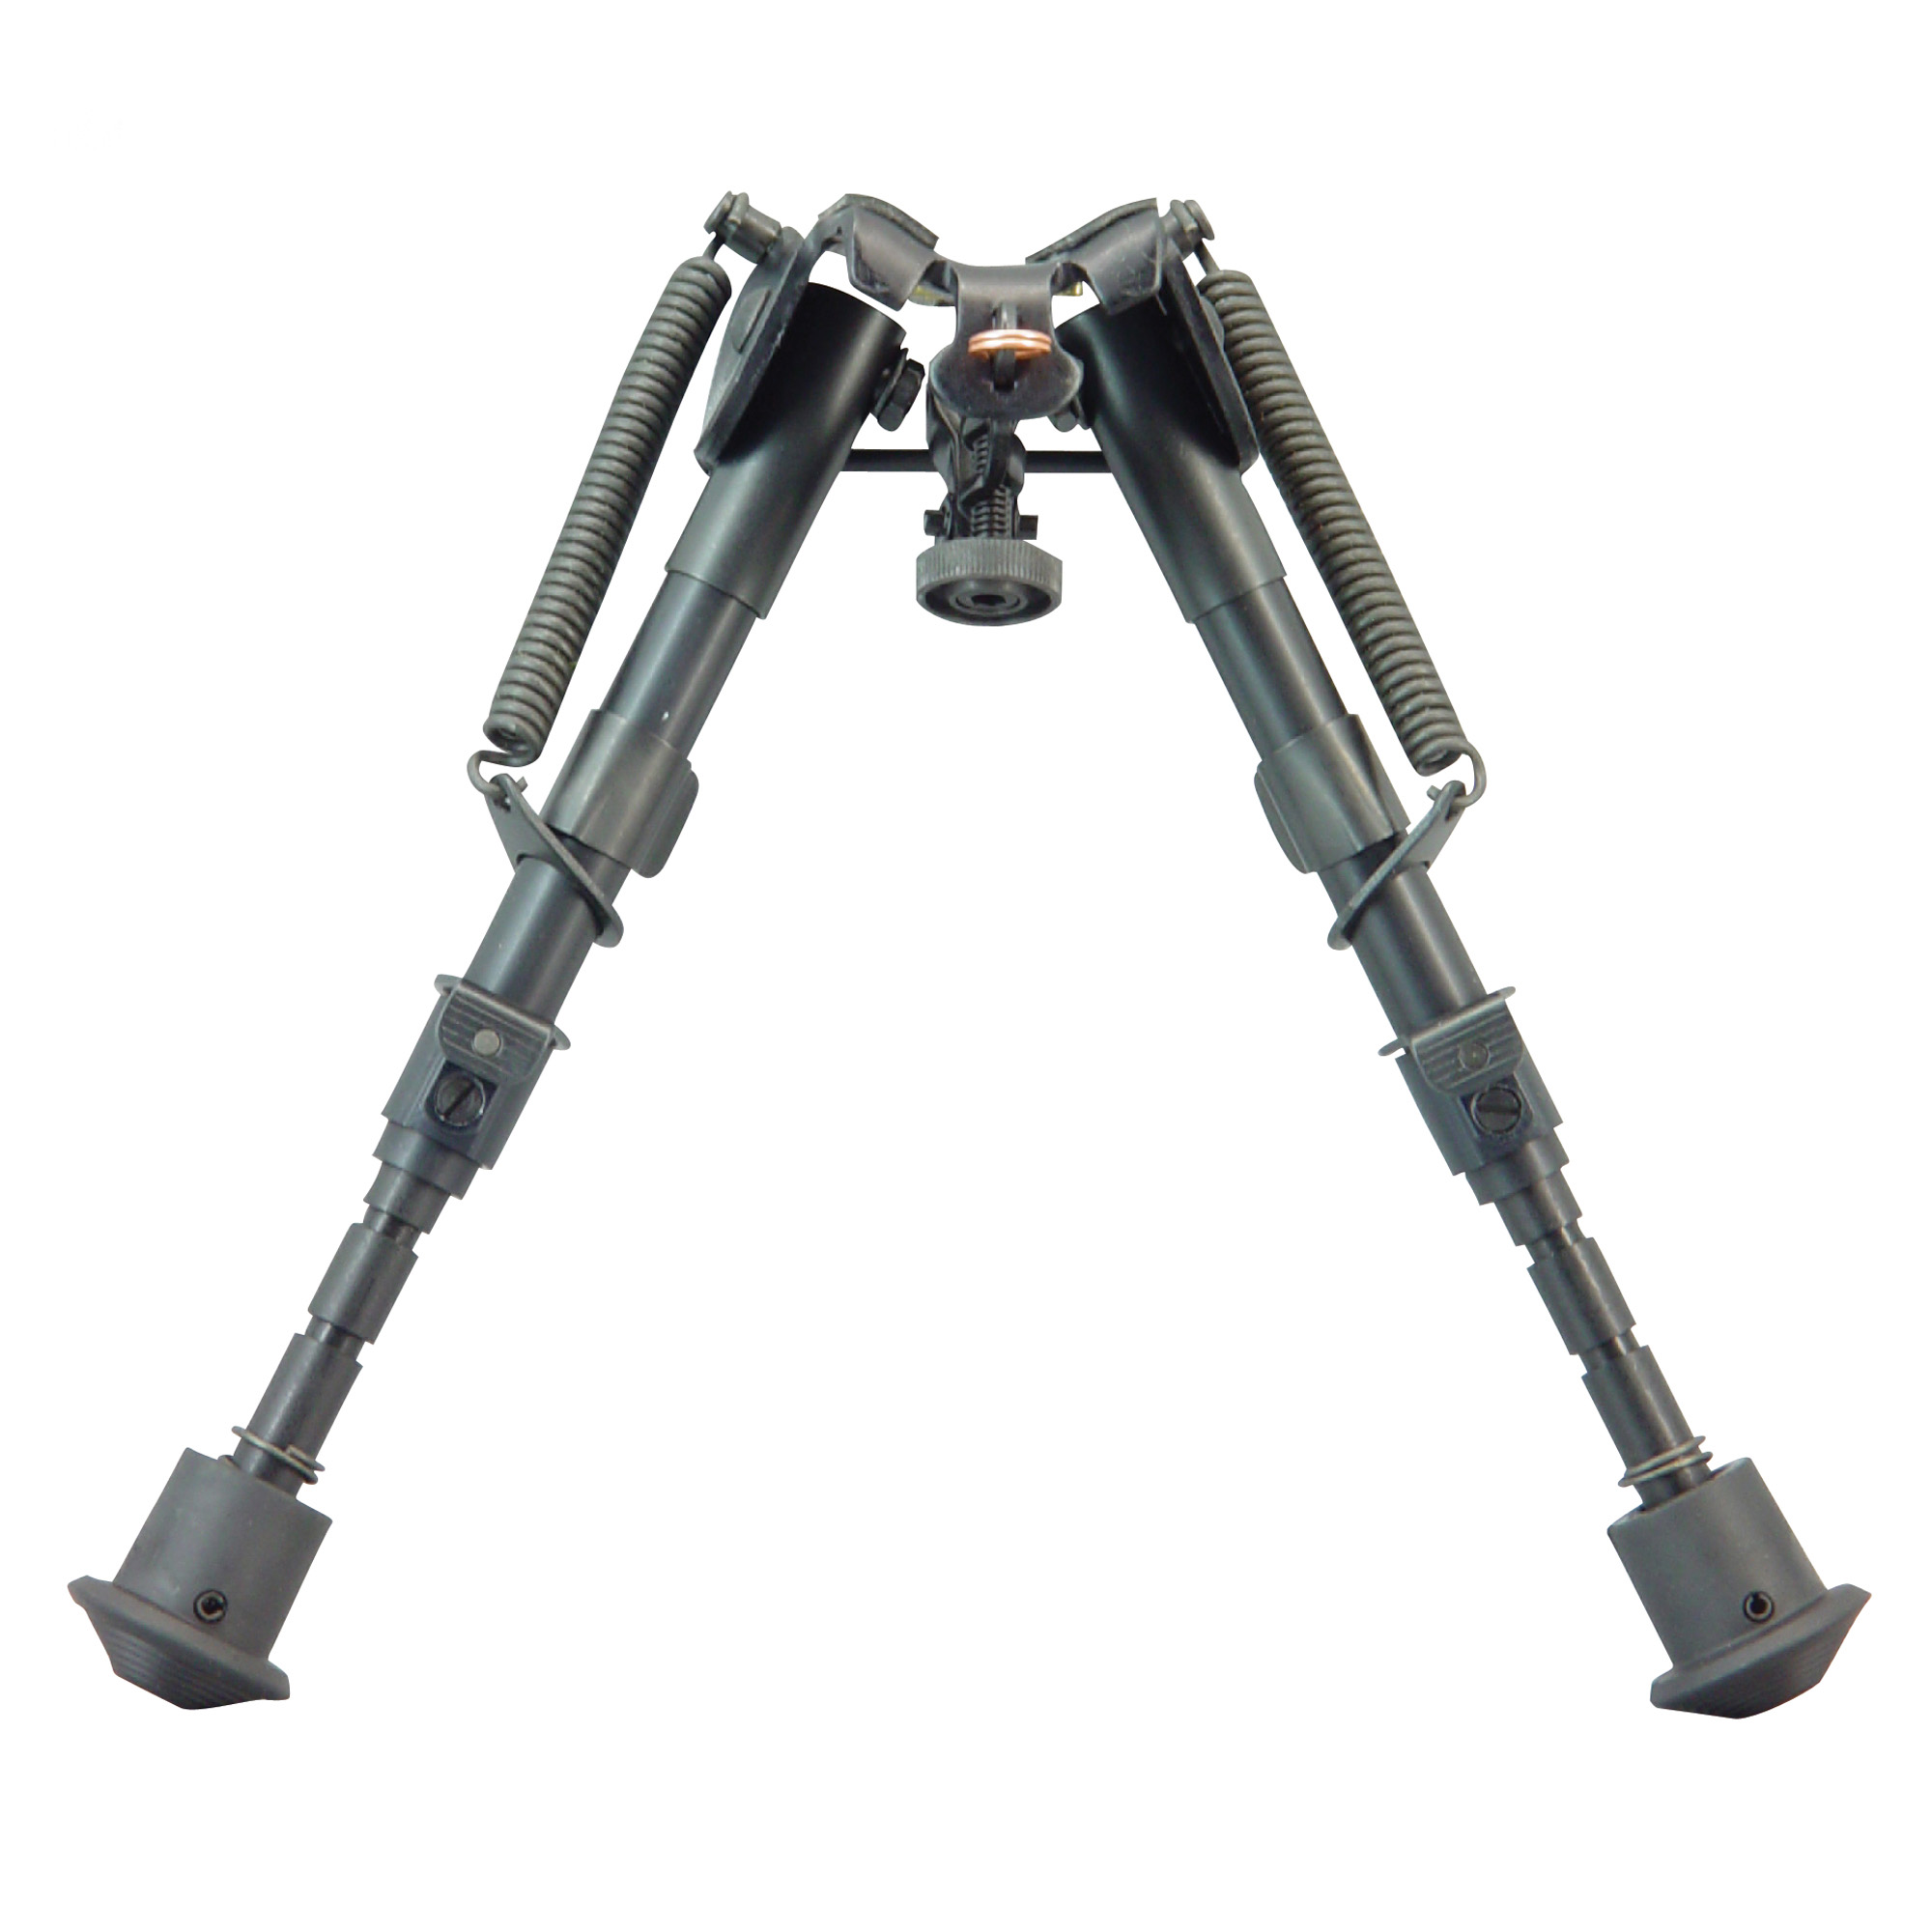 """Harris Engineering's 6""""-9"""" Ultra-Light Bench Rest Fixed Bipod with Notched Legs"""" attaches to a sling swivel stud. It is manufactured using high quality parts to ensure excellent function and sustainable use. The bipod features an anodized matte black finish."""